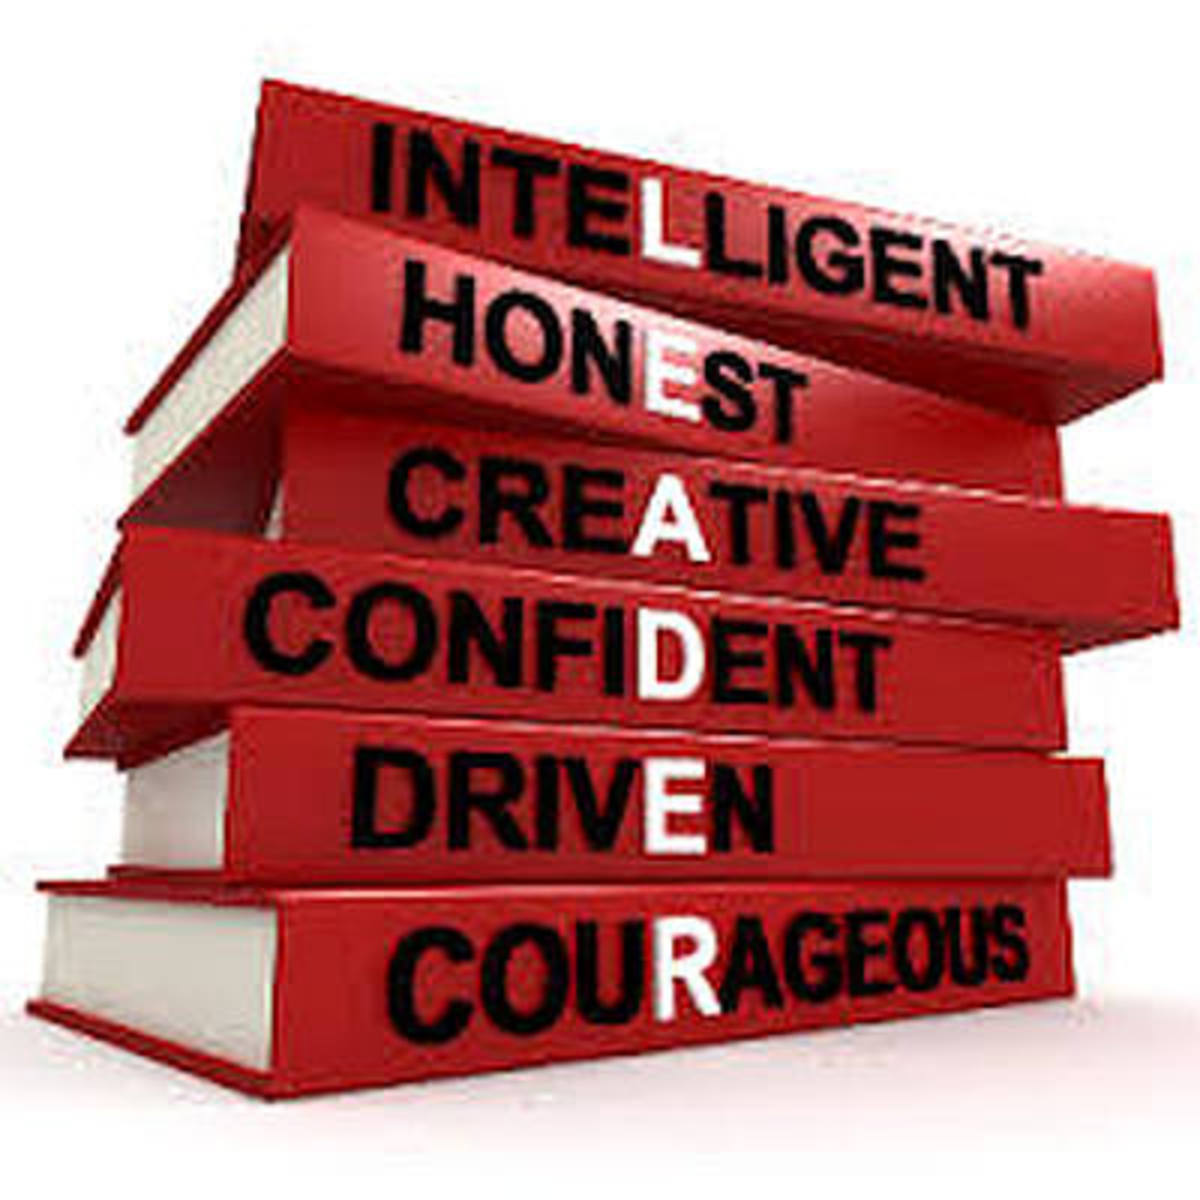 10-characteristics-of-an-effective-leader